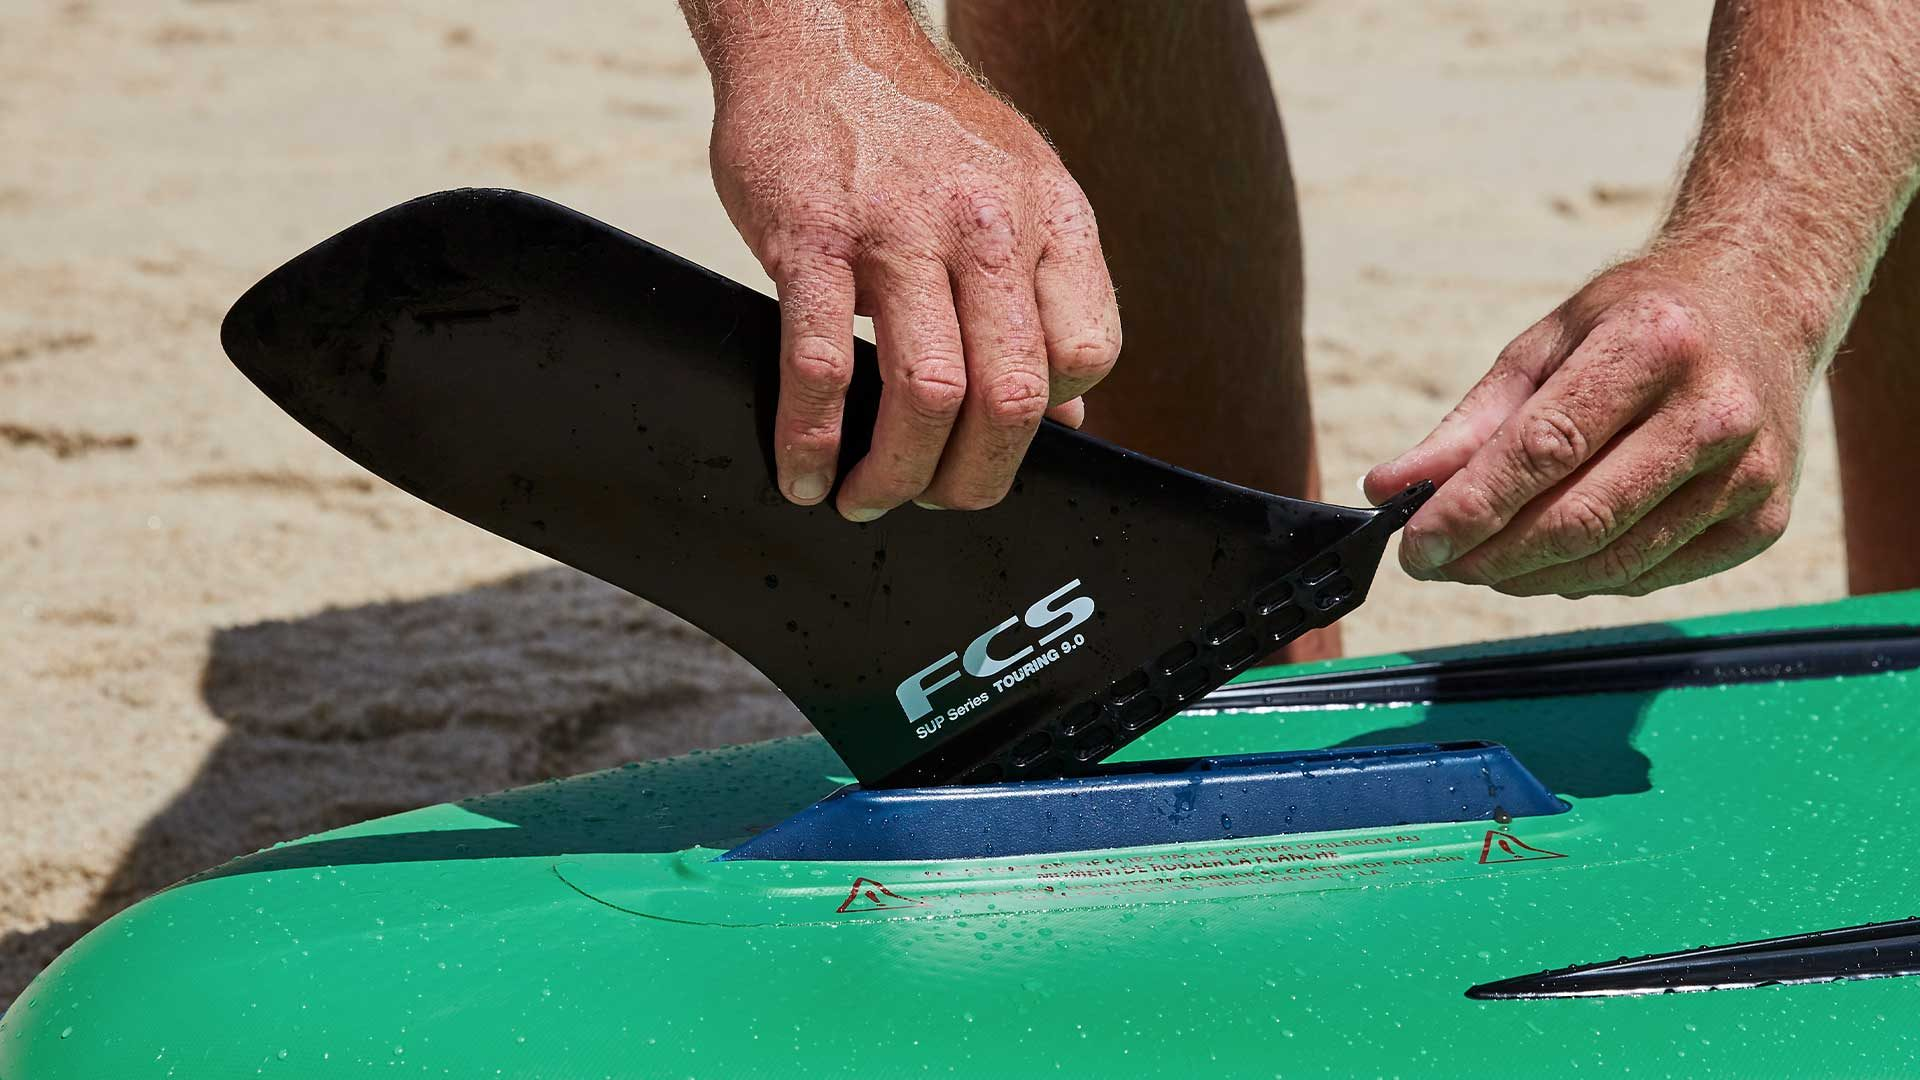 redpaddleco-150-voyager-tandem-inflatable-paddle-board-desktop-gallery-fins